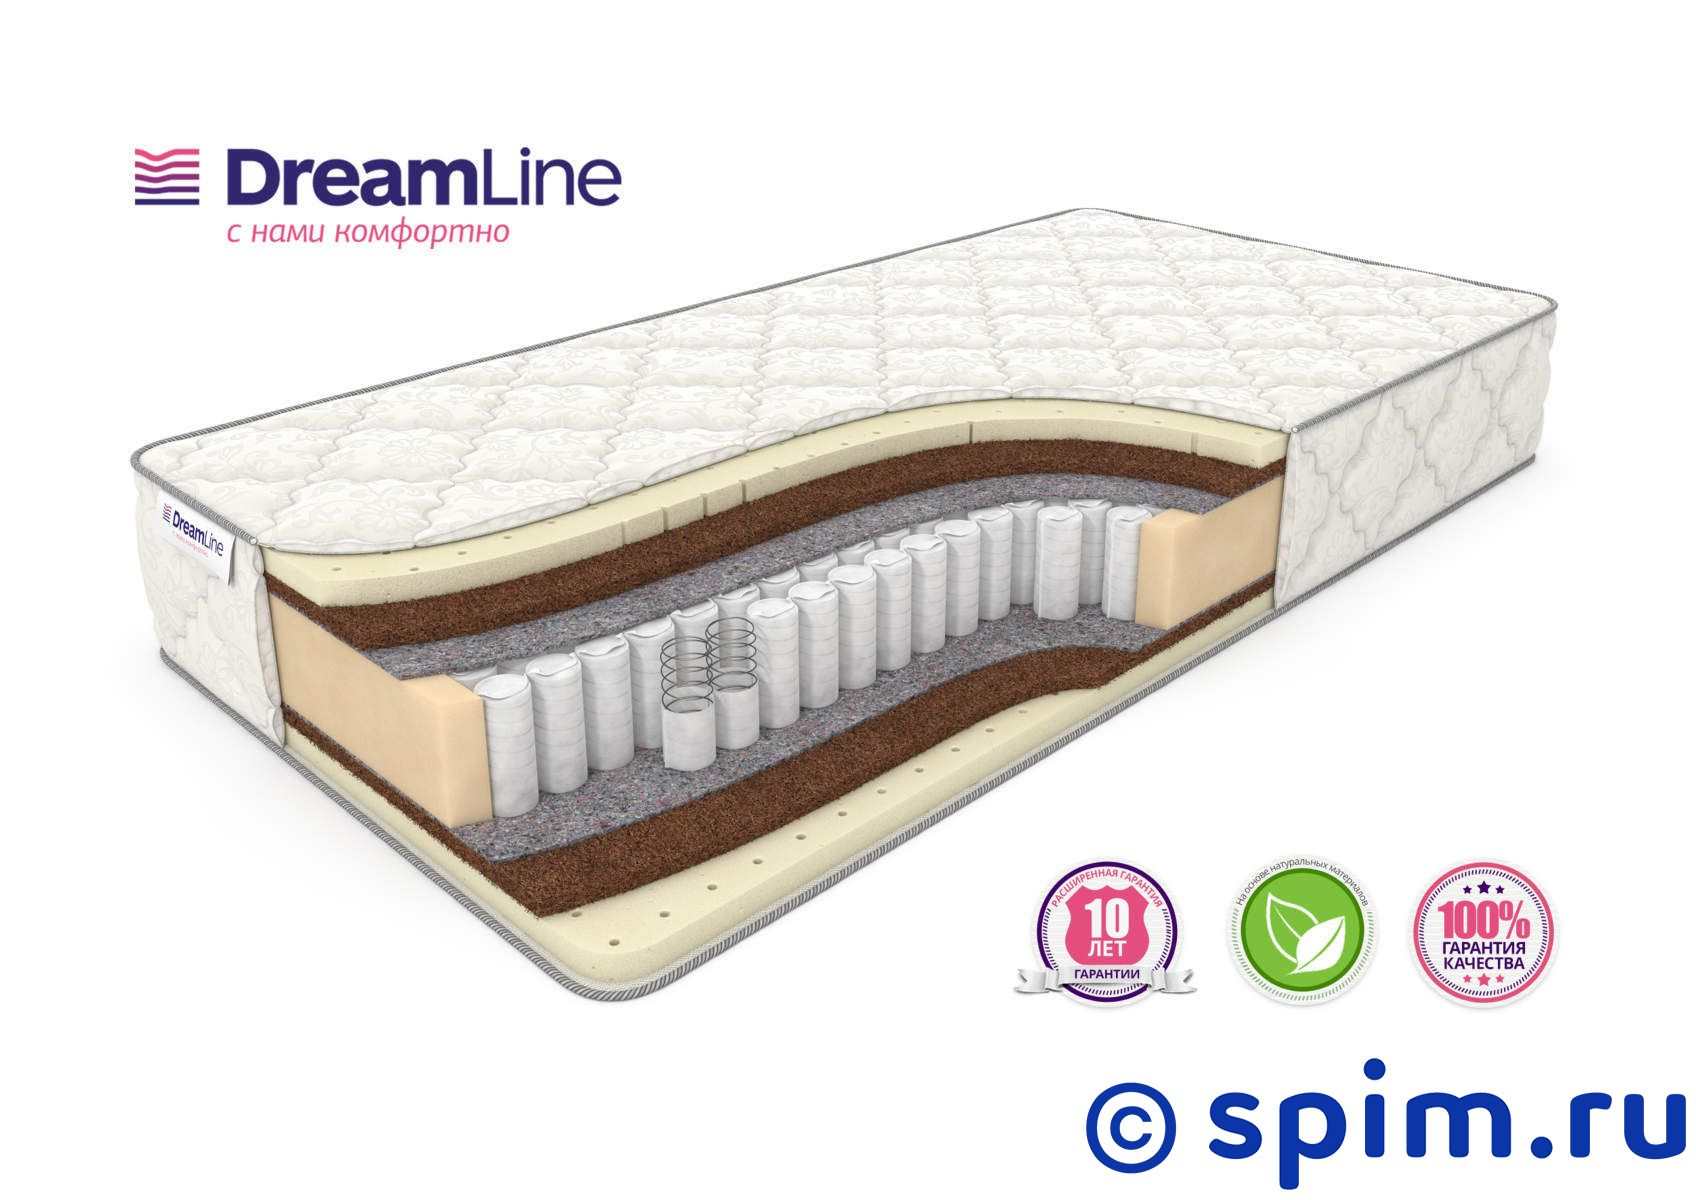 Матрас DreamLine Prime Medium Tfk 140х195 см матрас dreamline dreamroll contour mix 180х200